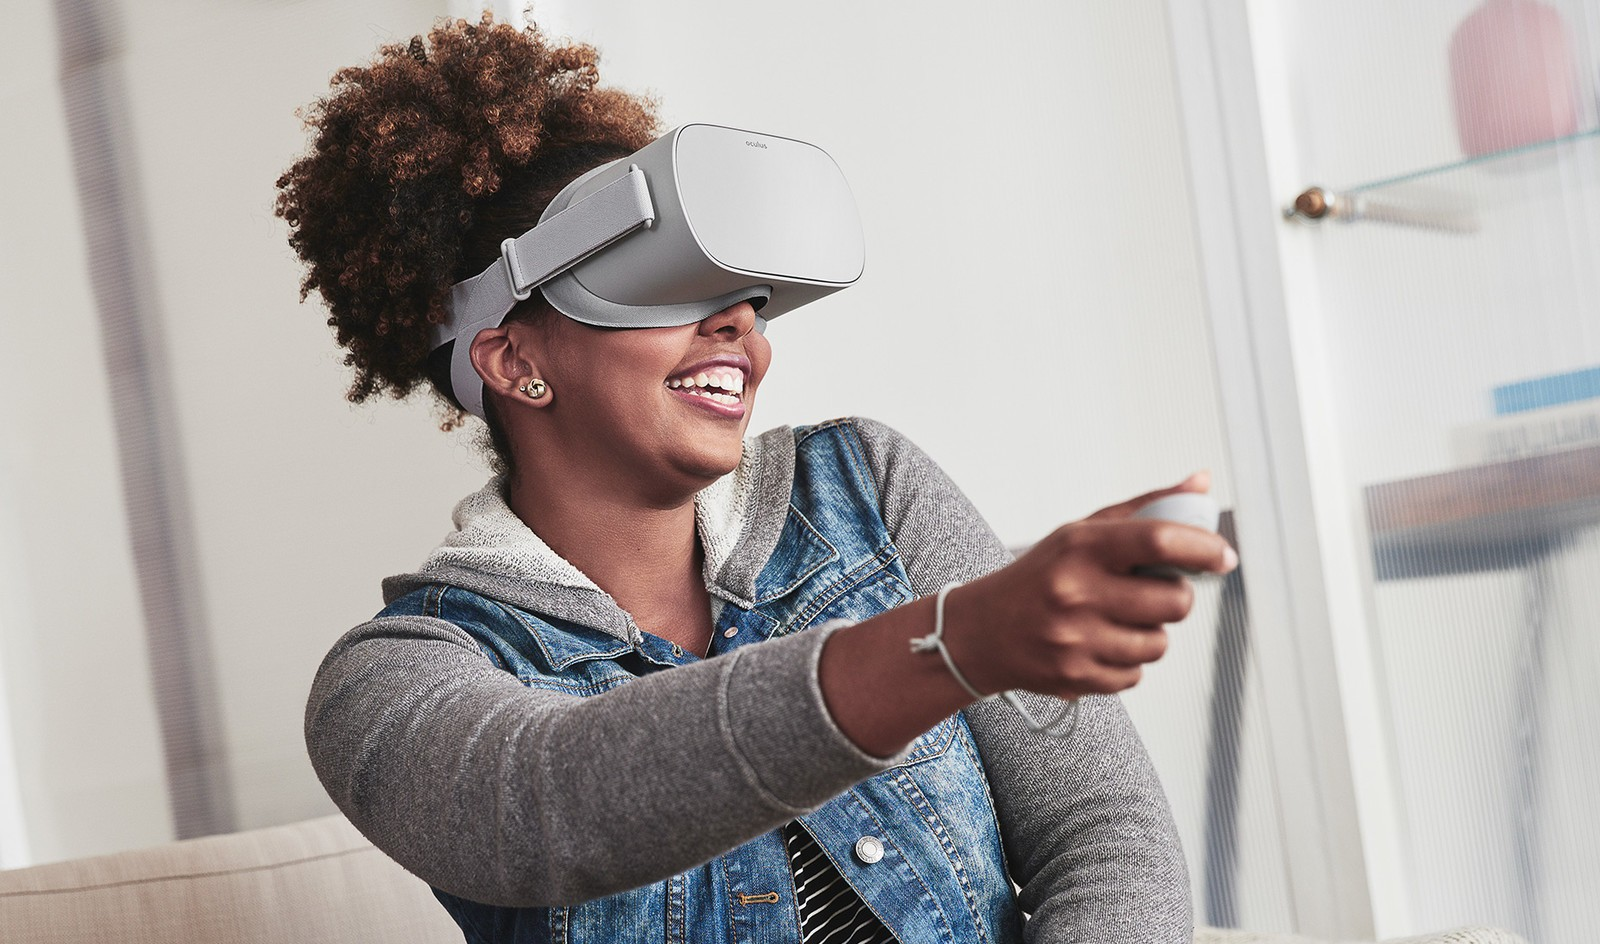 Oculus Go Review: Entry Level VR For The Masses